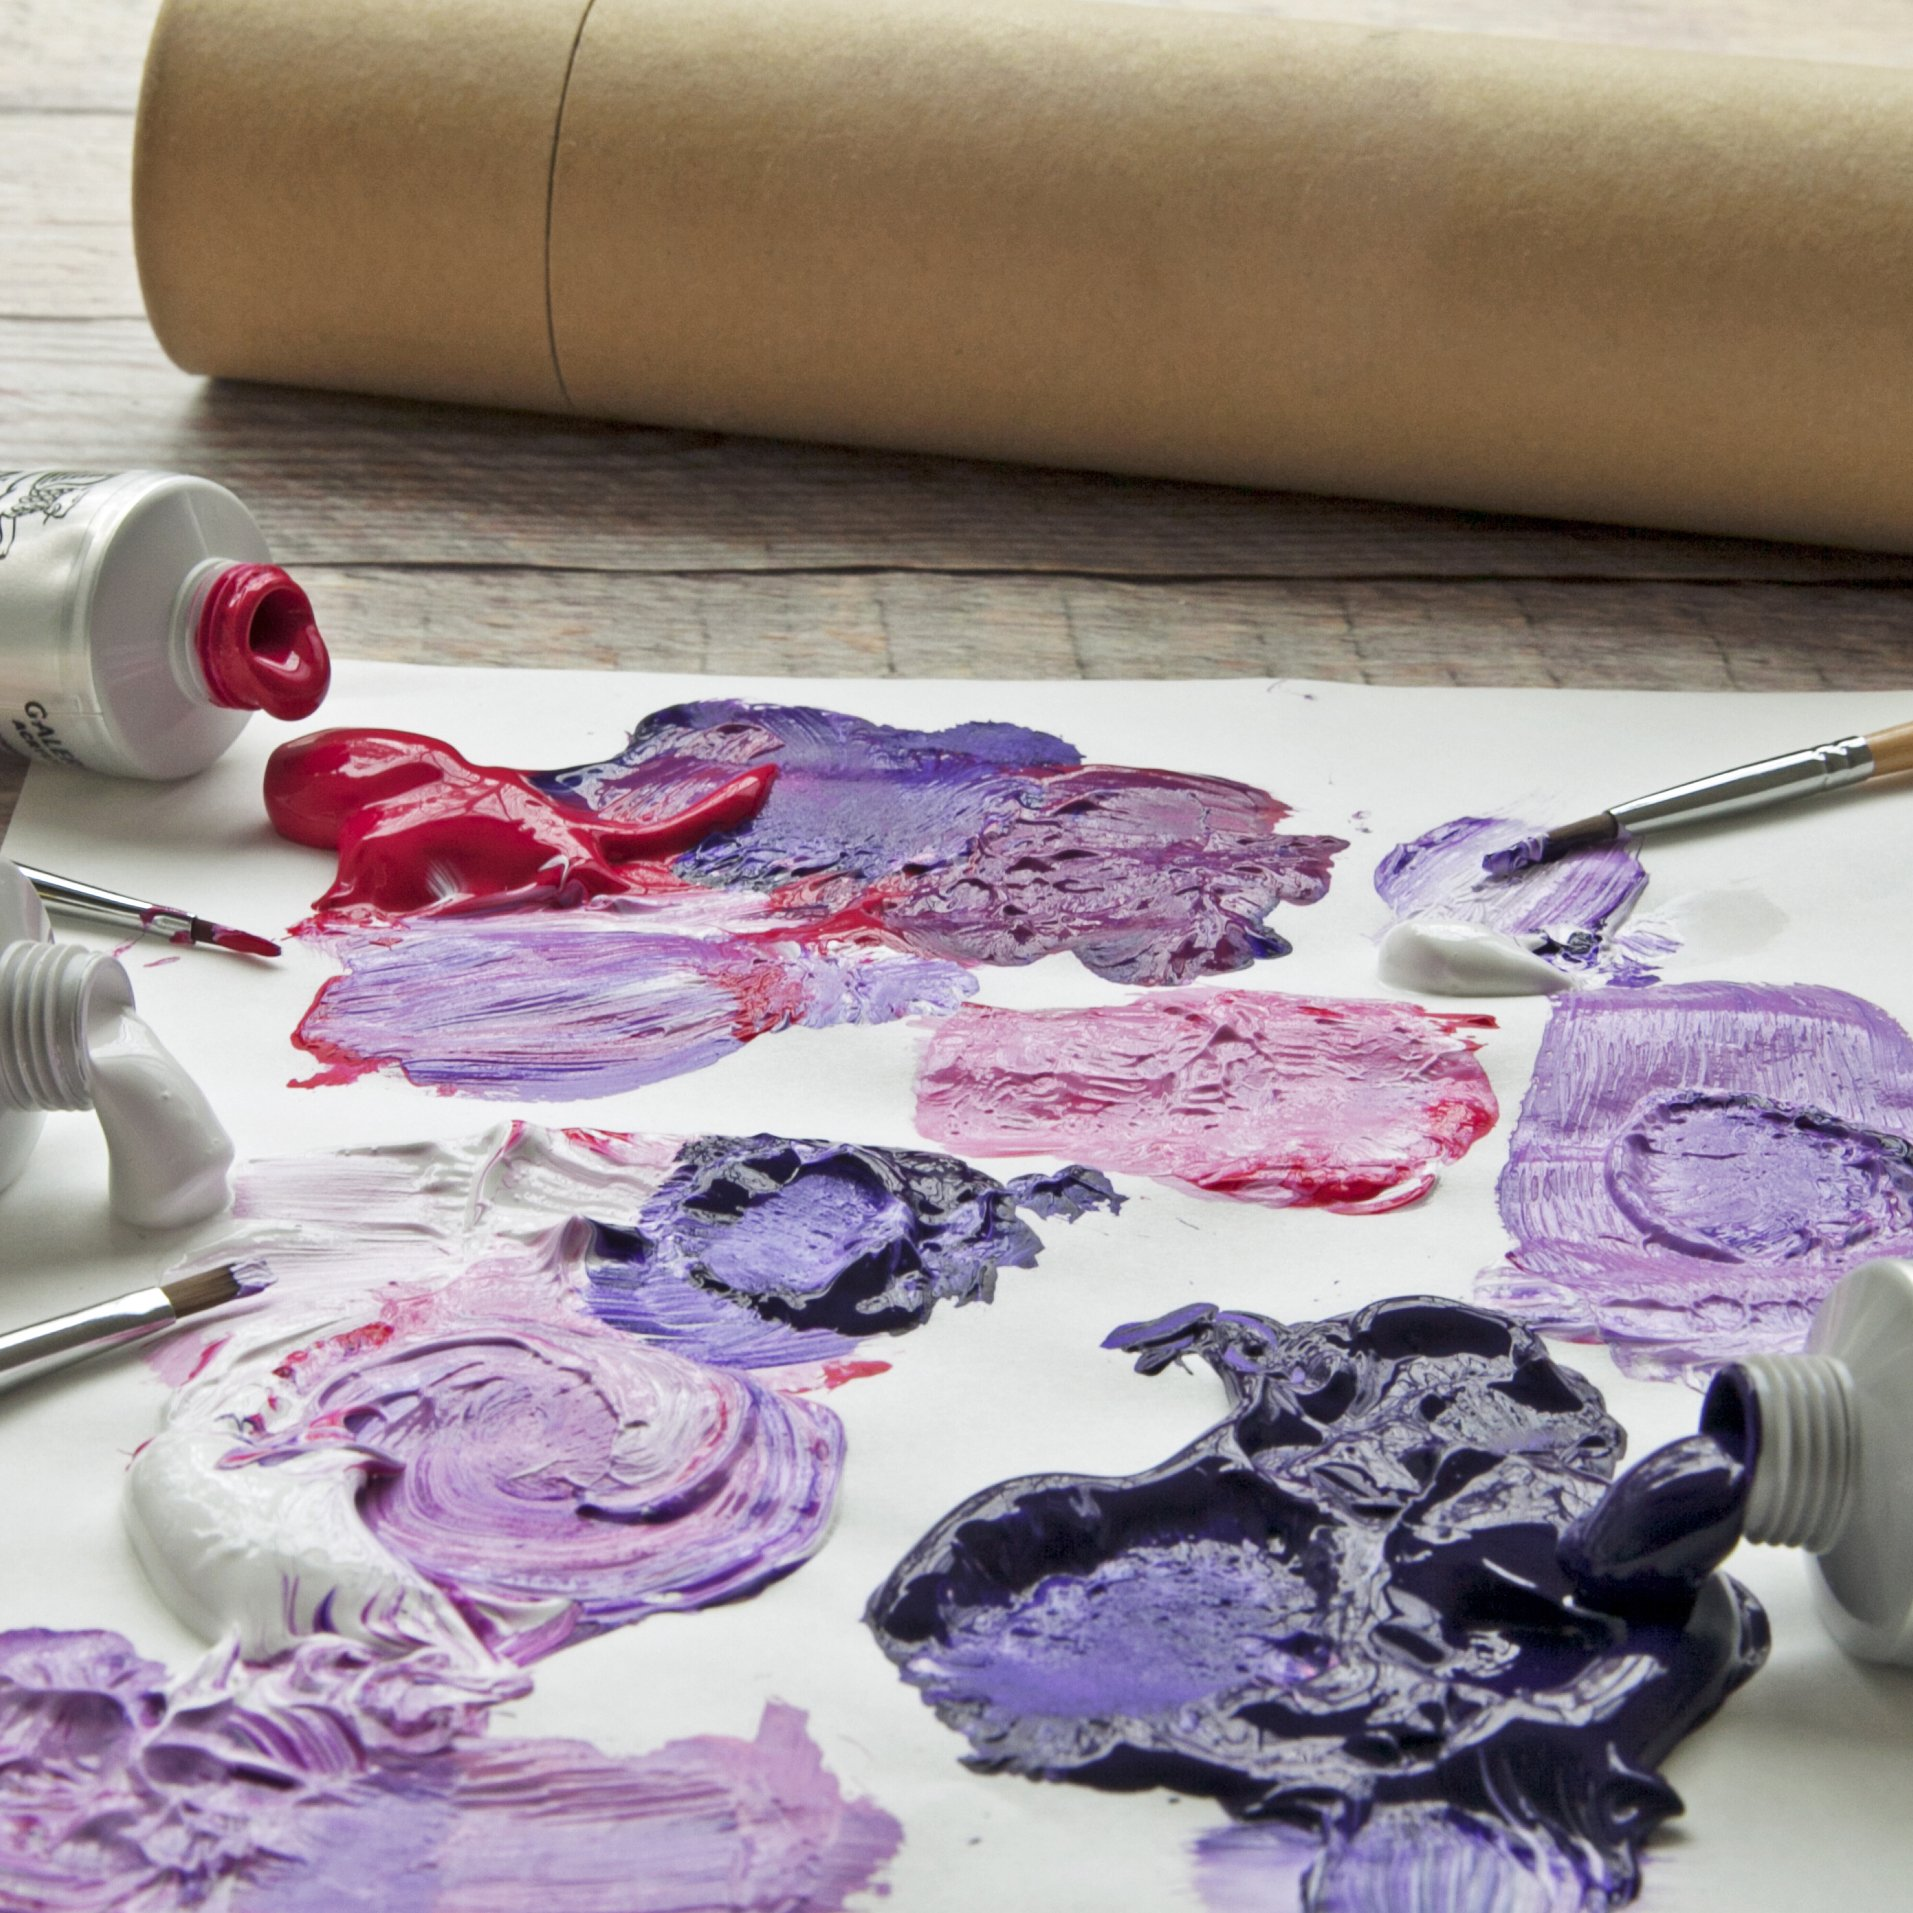 Purple and pink paints smeared across a white canvas with open paint containers laid out.